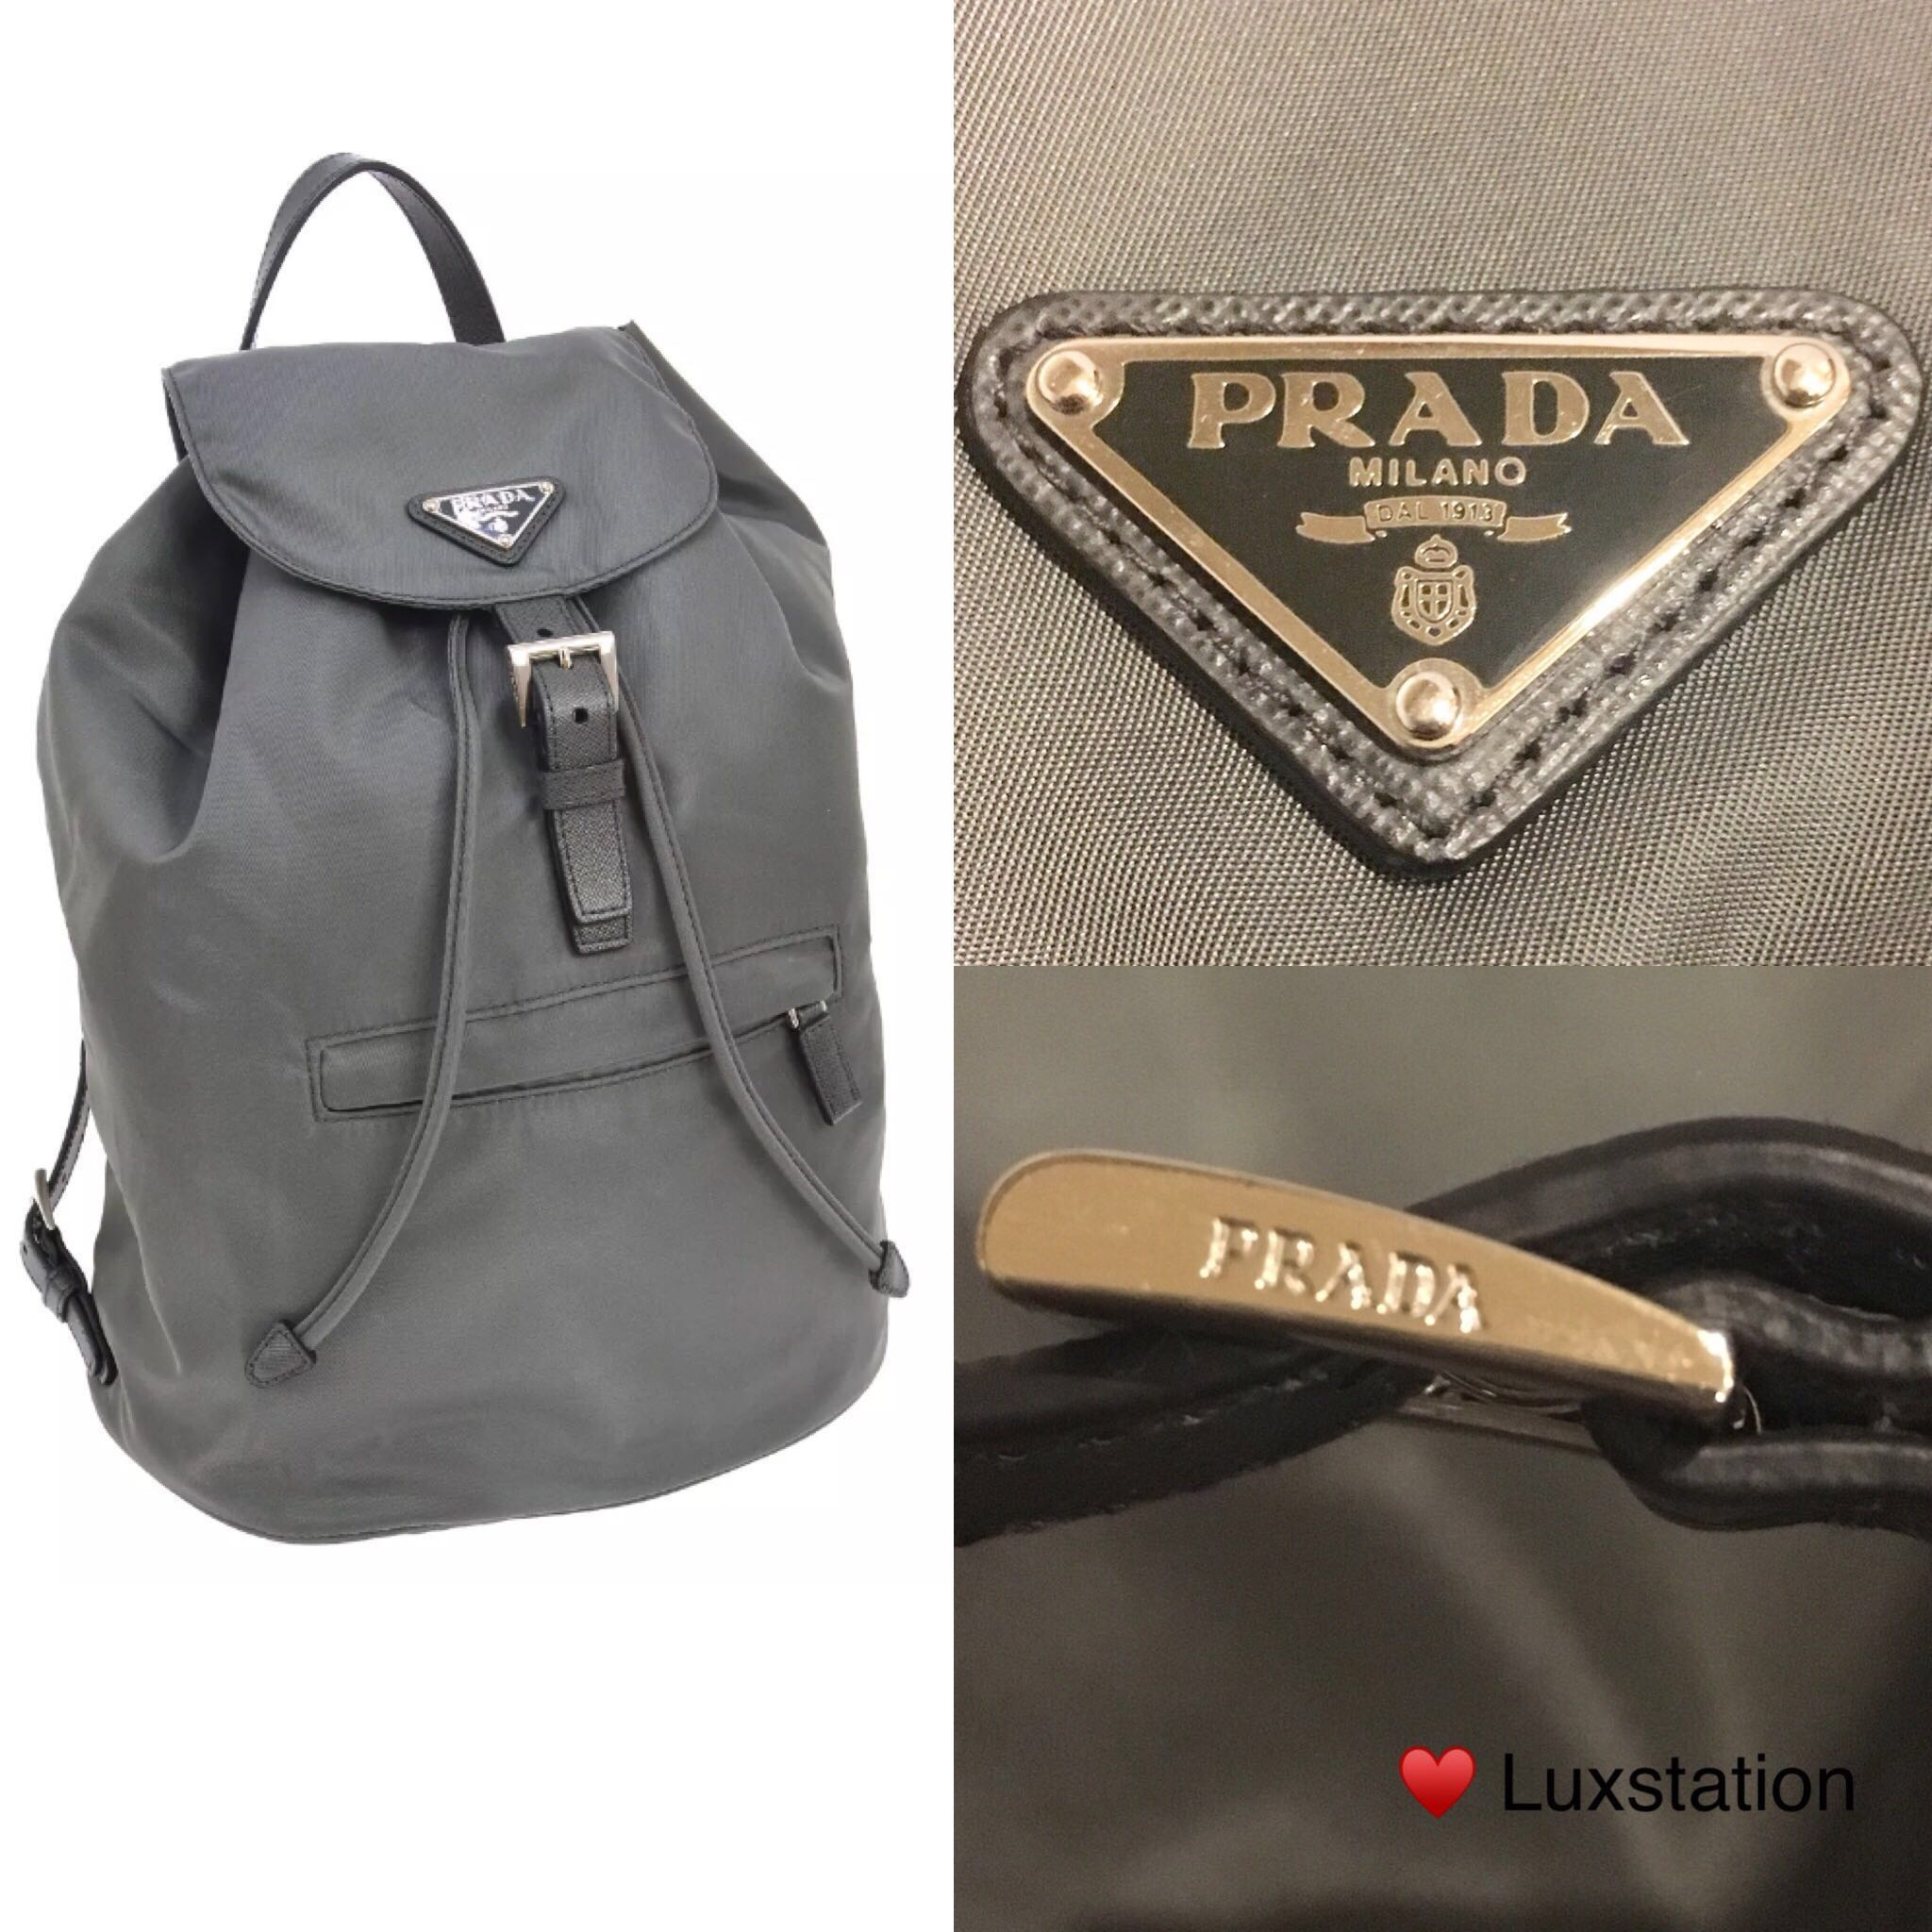 ... usa prada rucksack backpack bz0032 nylon ardesia grey luxury bags  wallets backpacks on carousell fbbc1 082f9 26d8bd8cad7b3